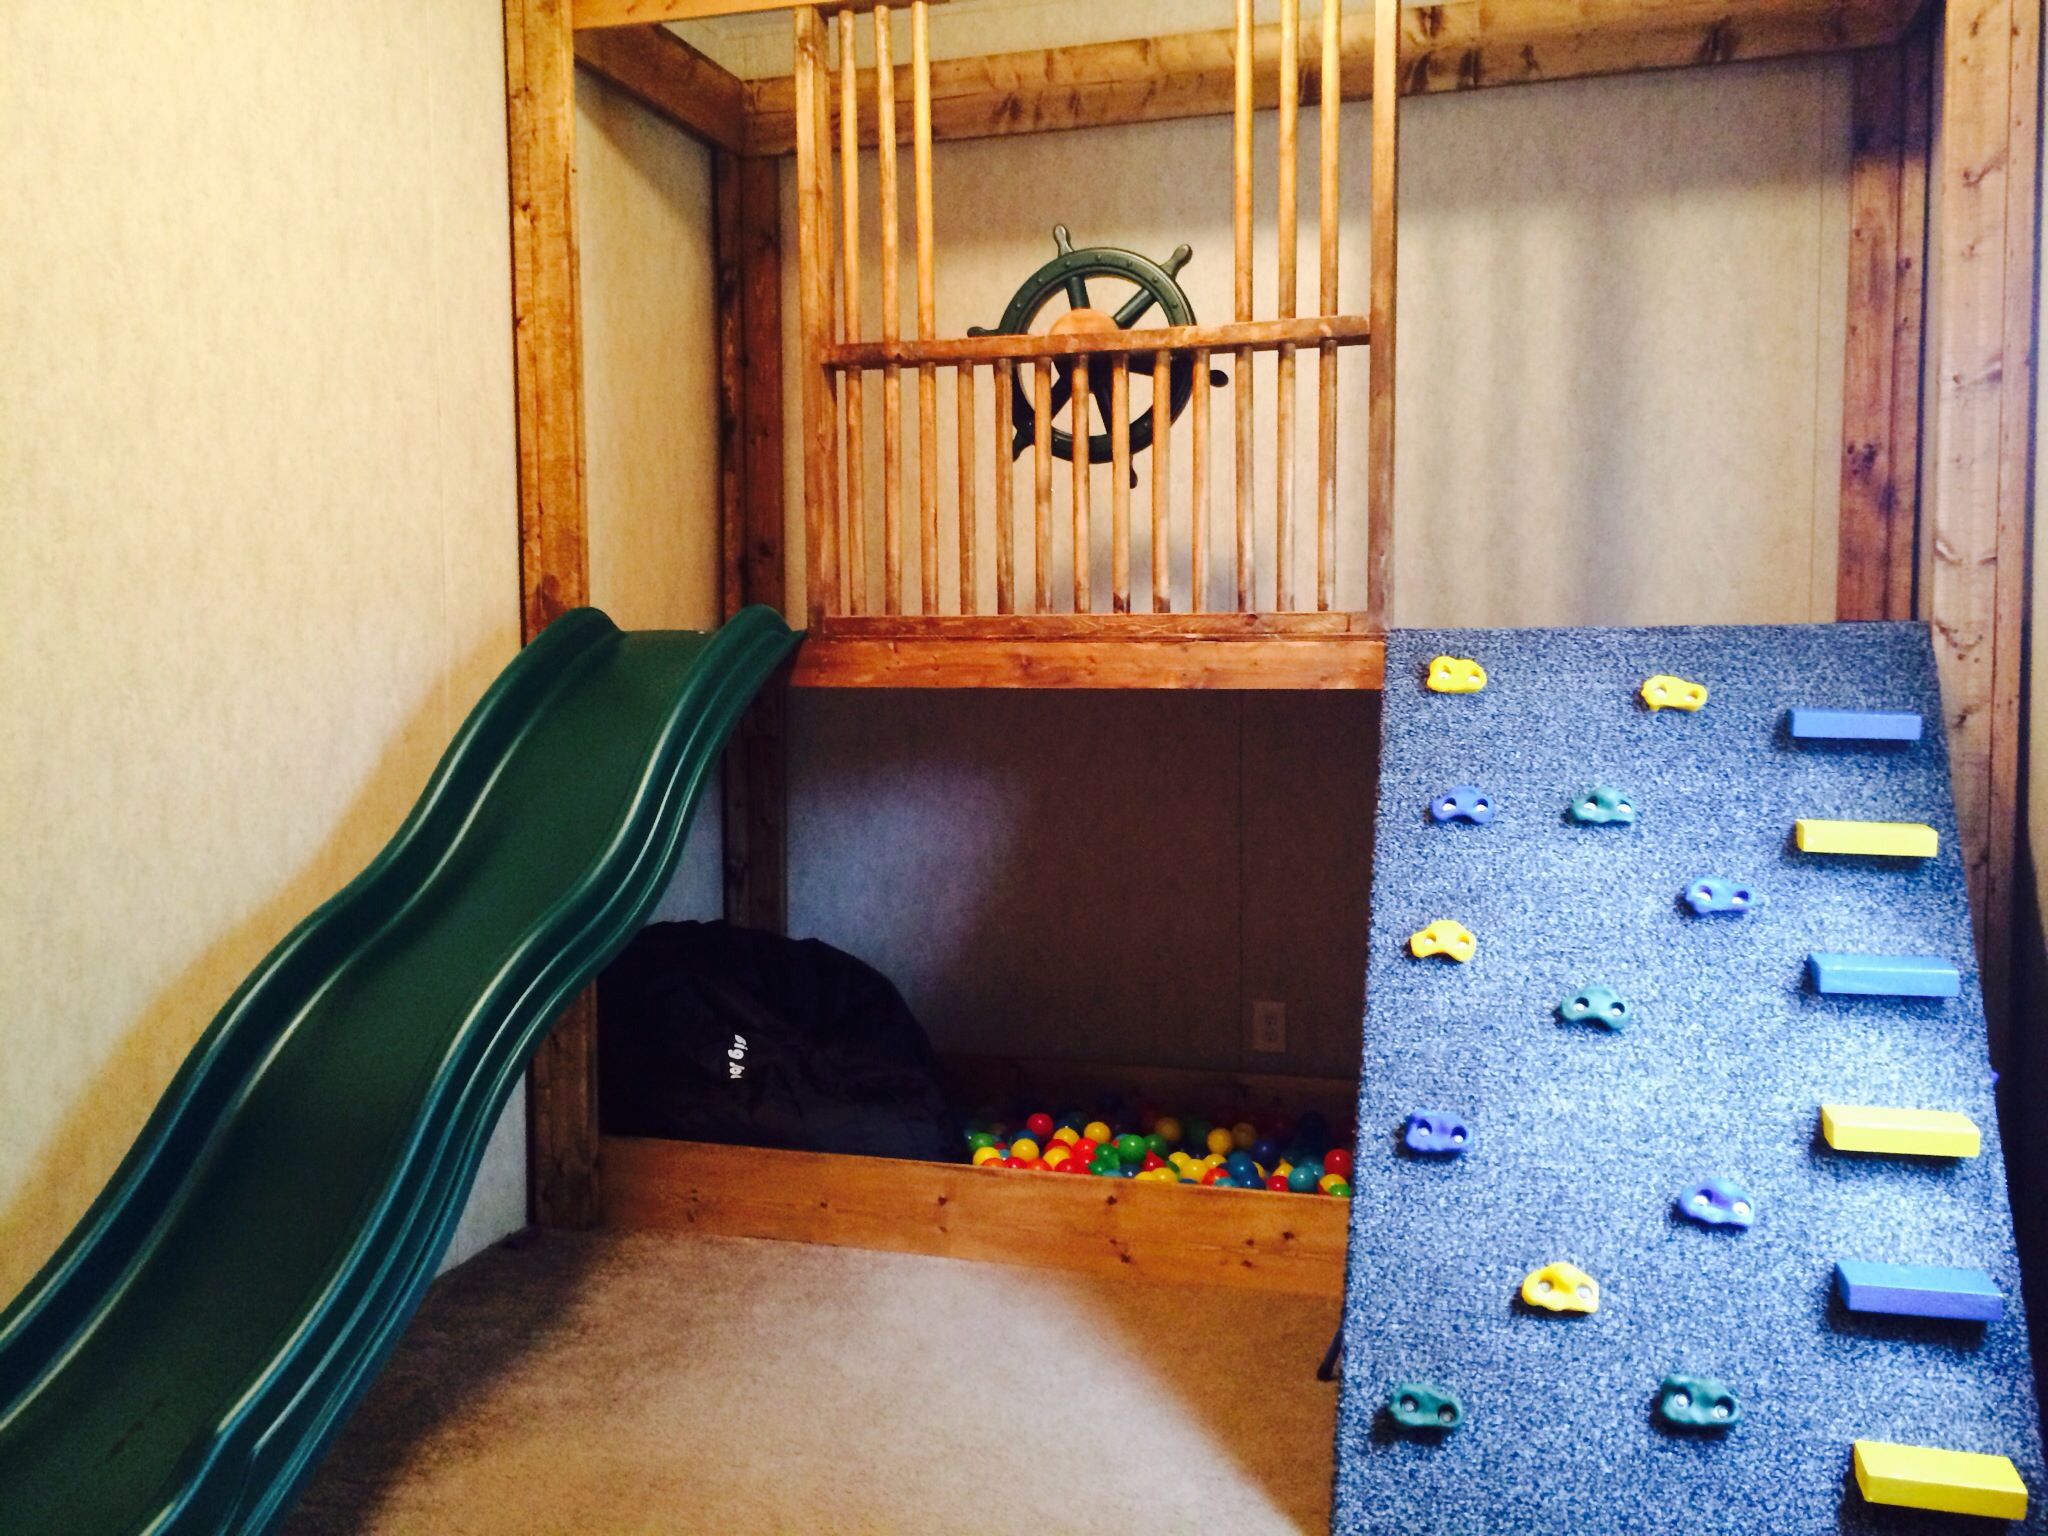 Indoor playground basement images for Indoor playground design ideas